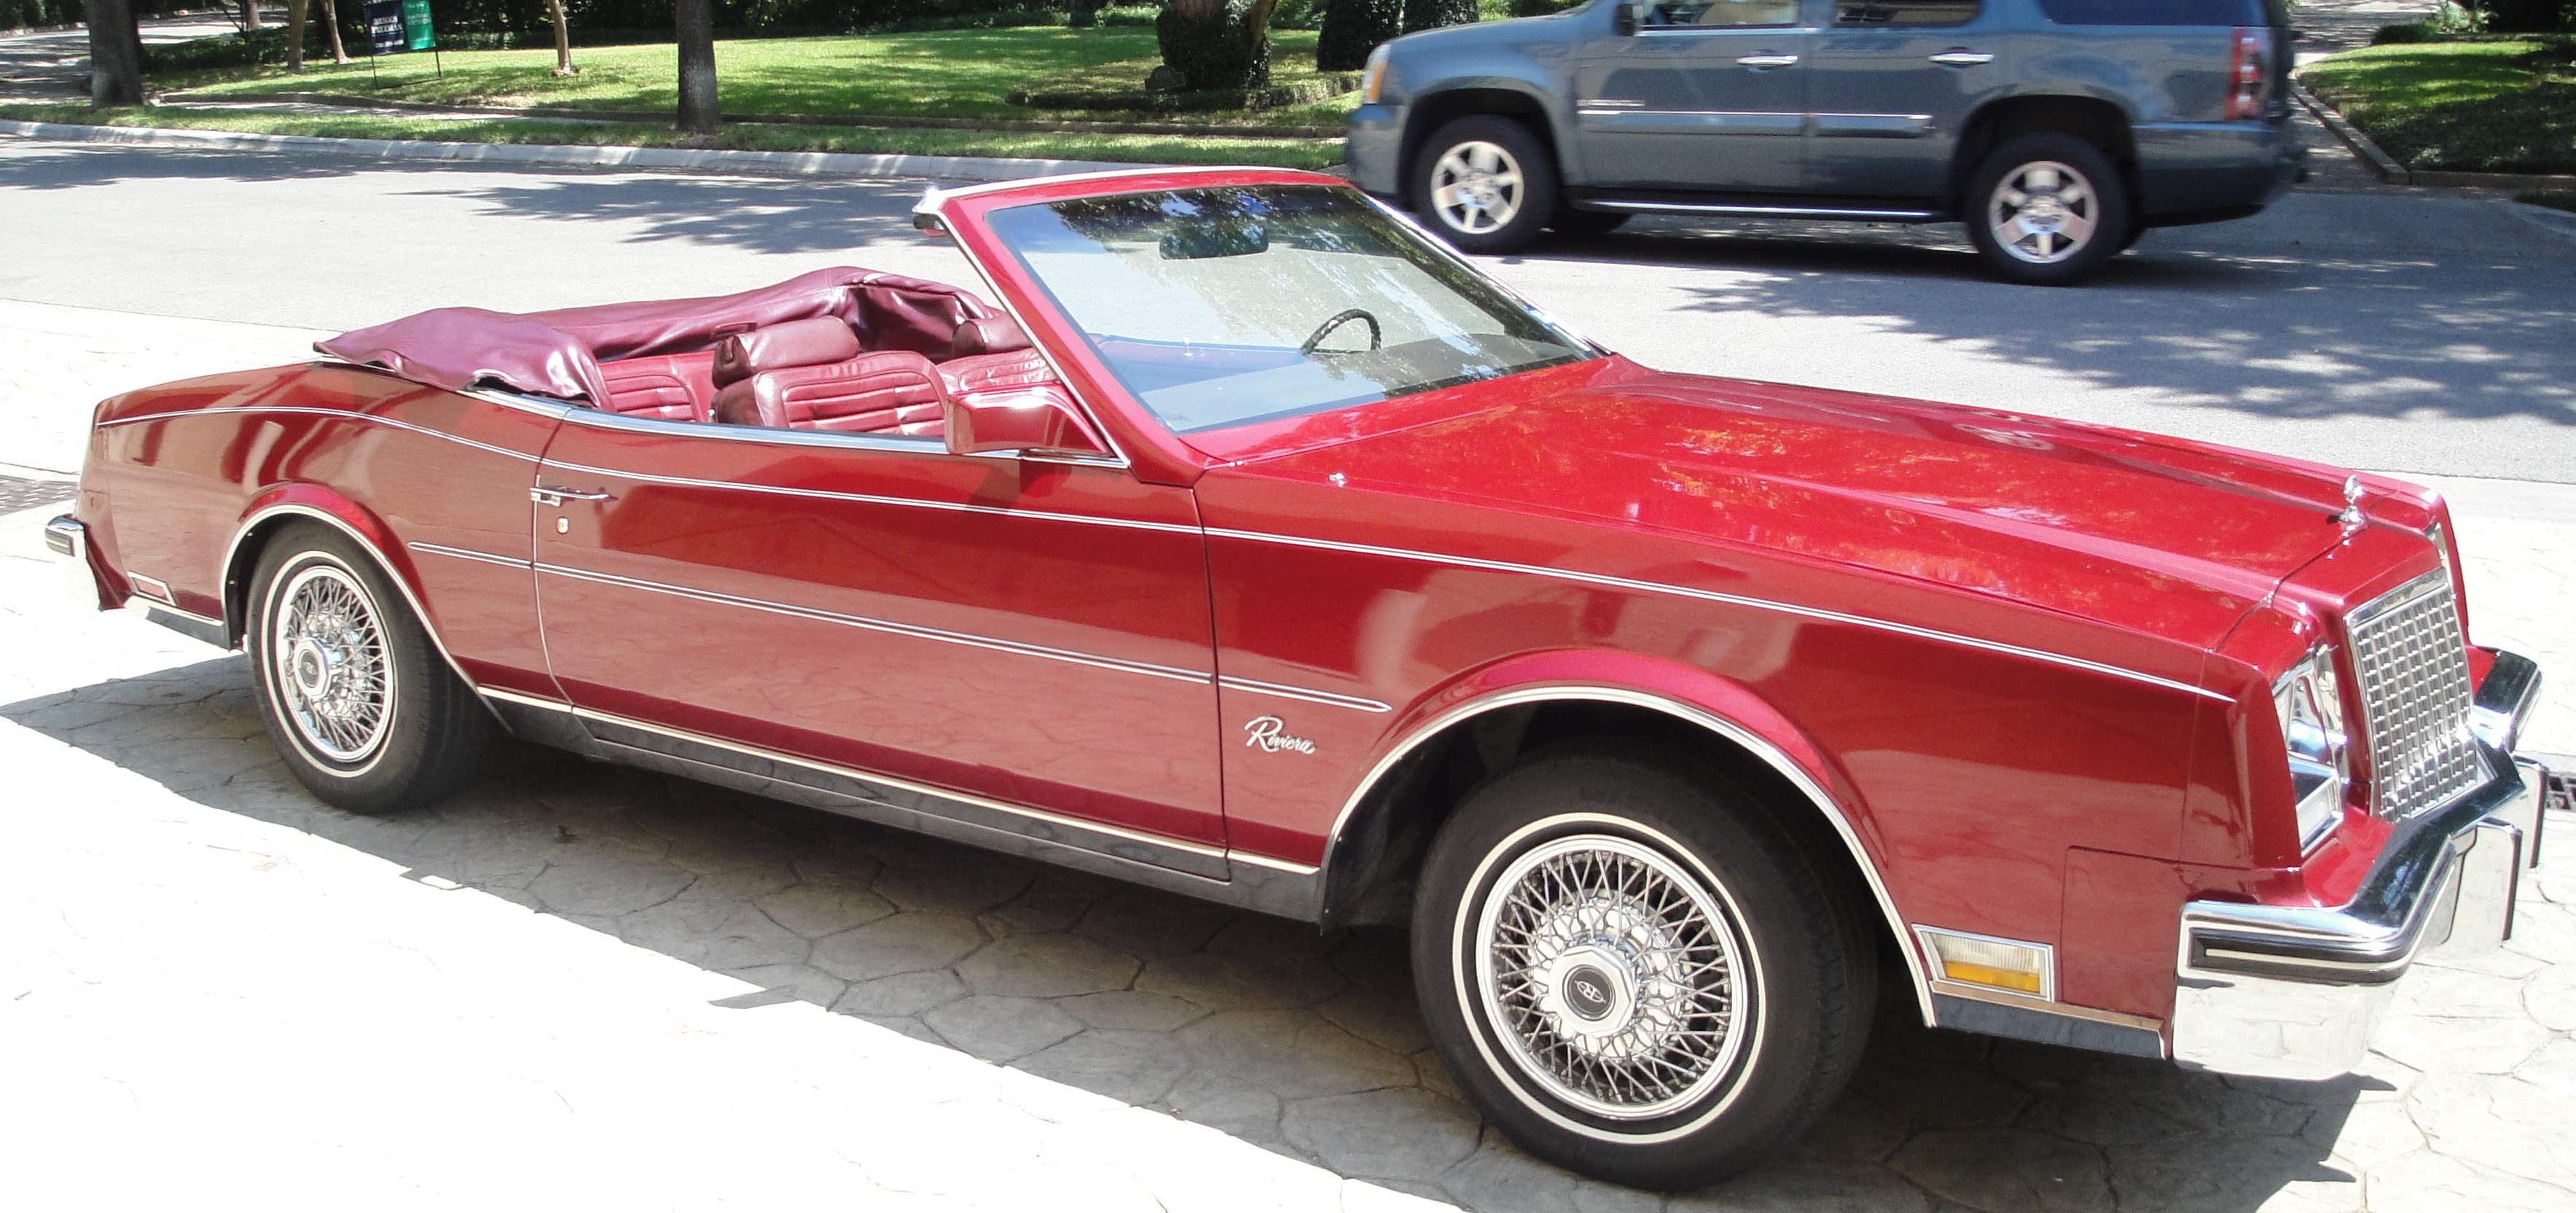 Buick Riviera Convertible Picture Gallery